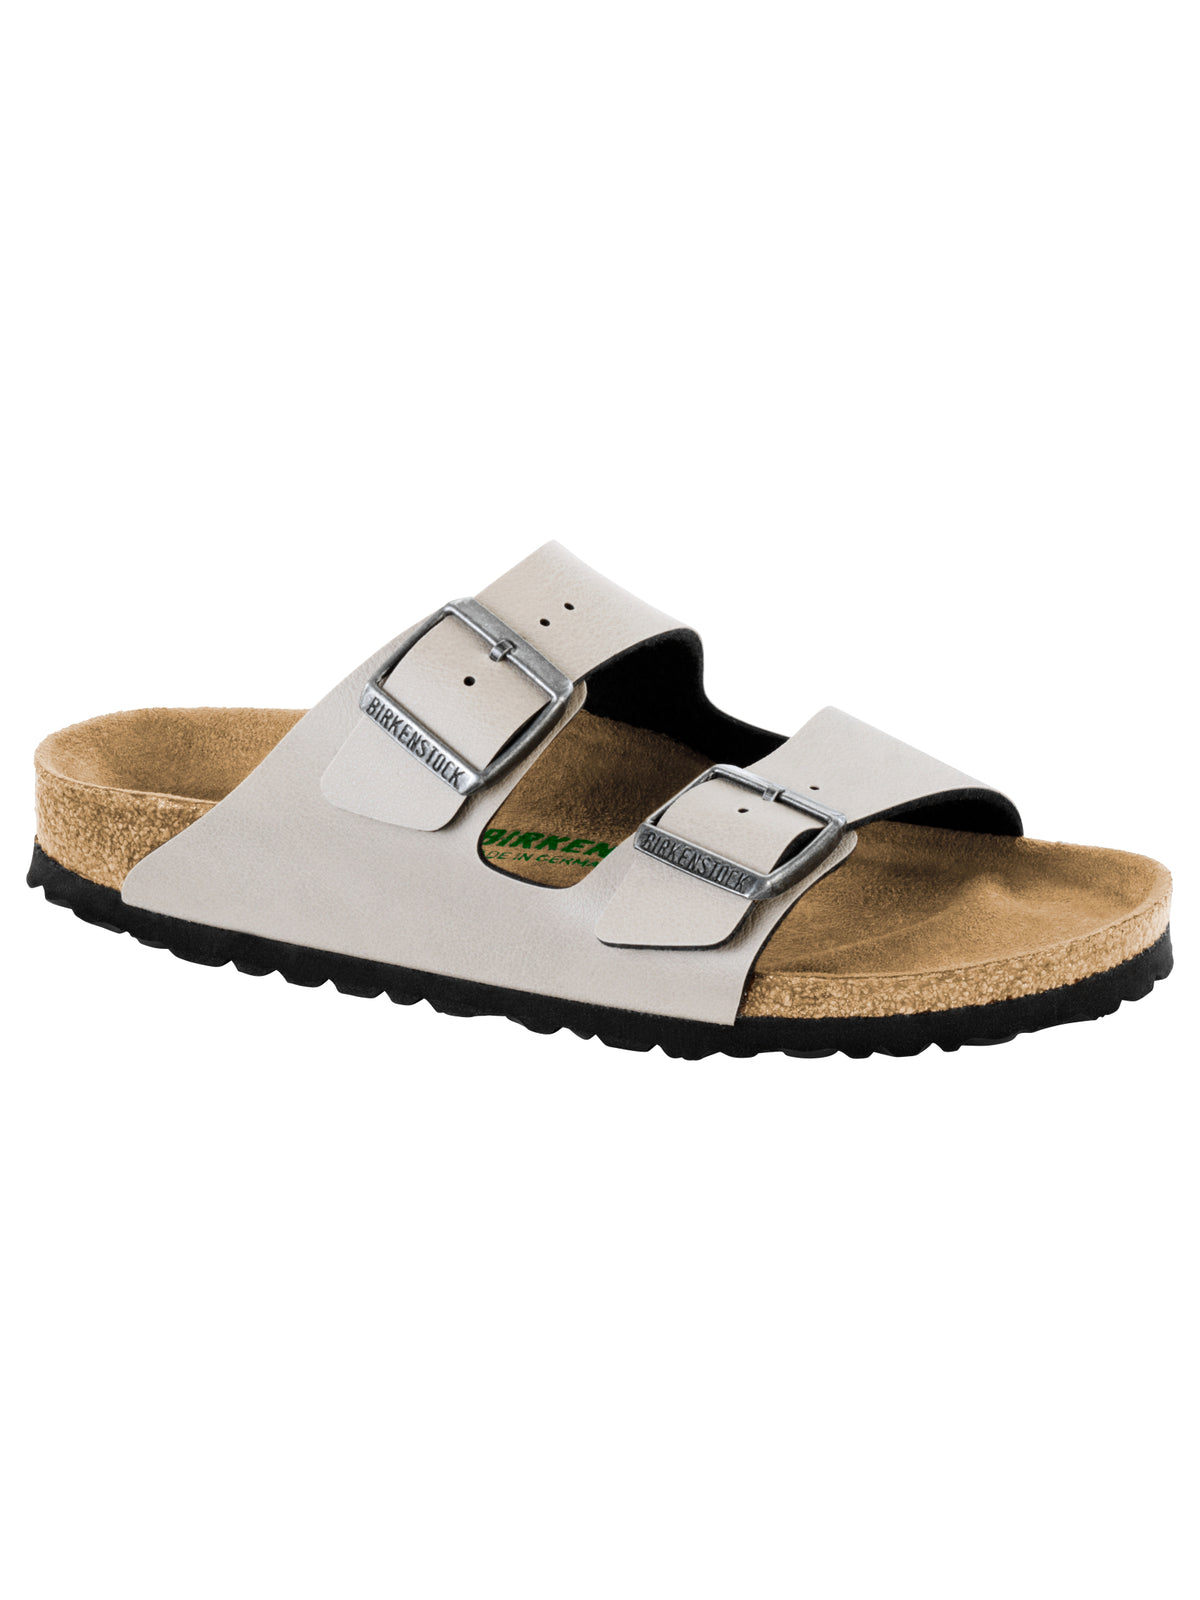 Unisex Arizona Two-Strap Sandals in Stone